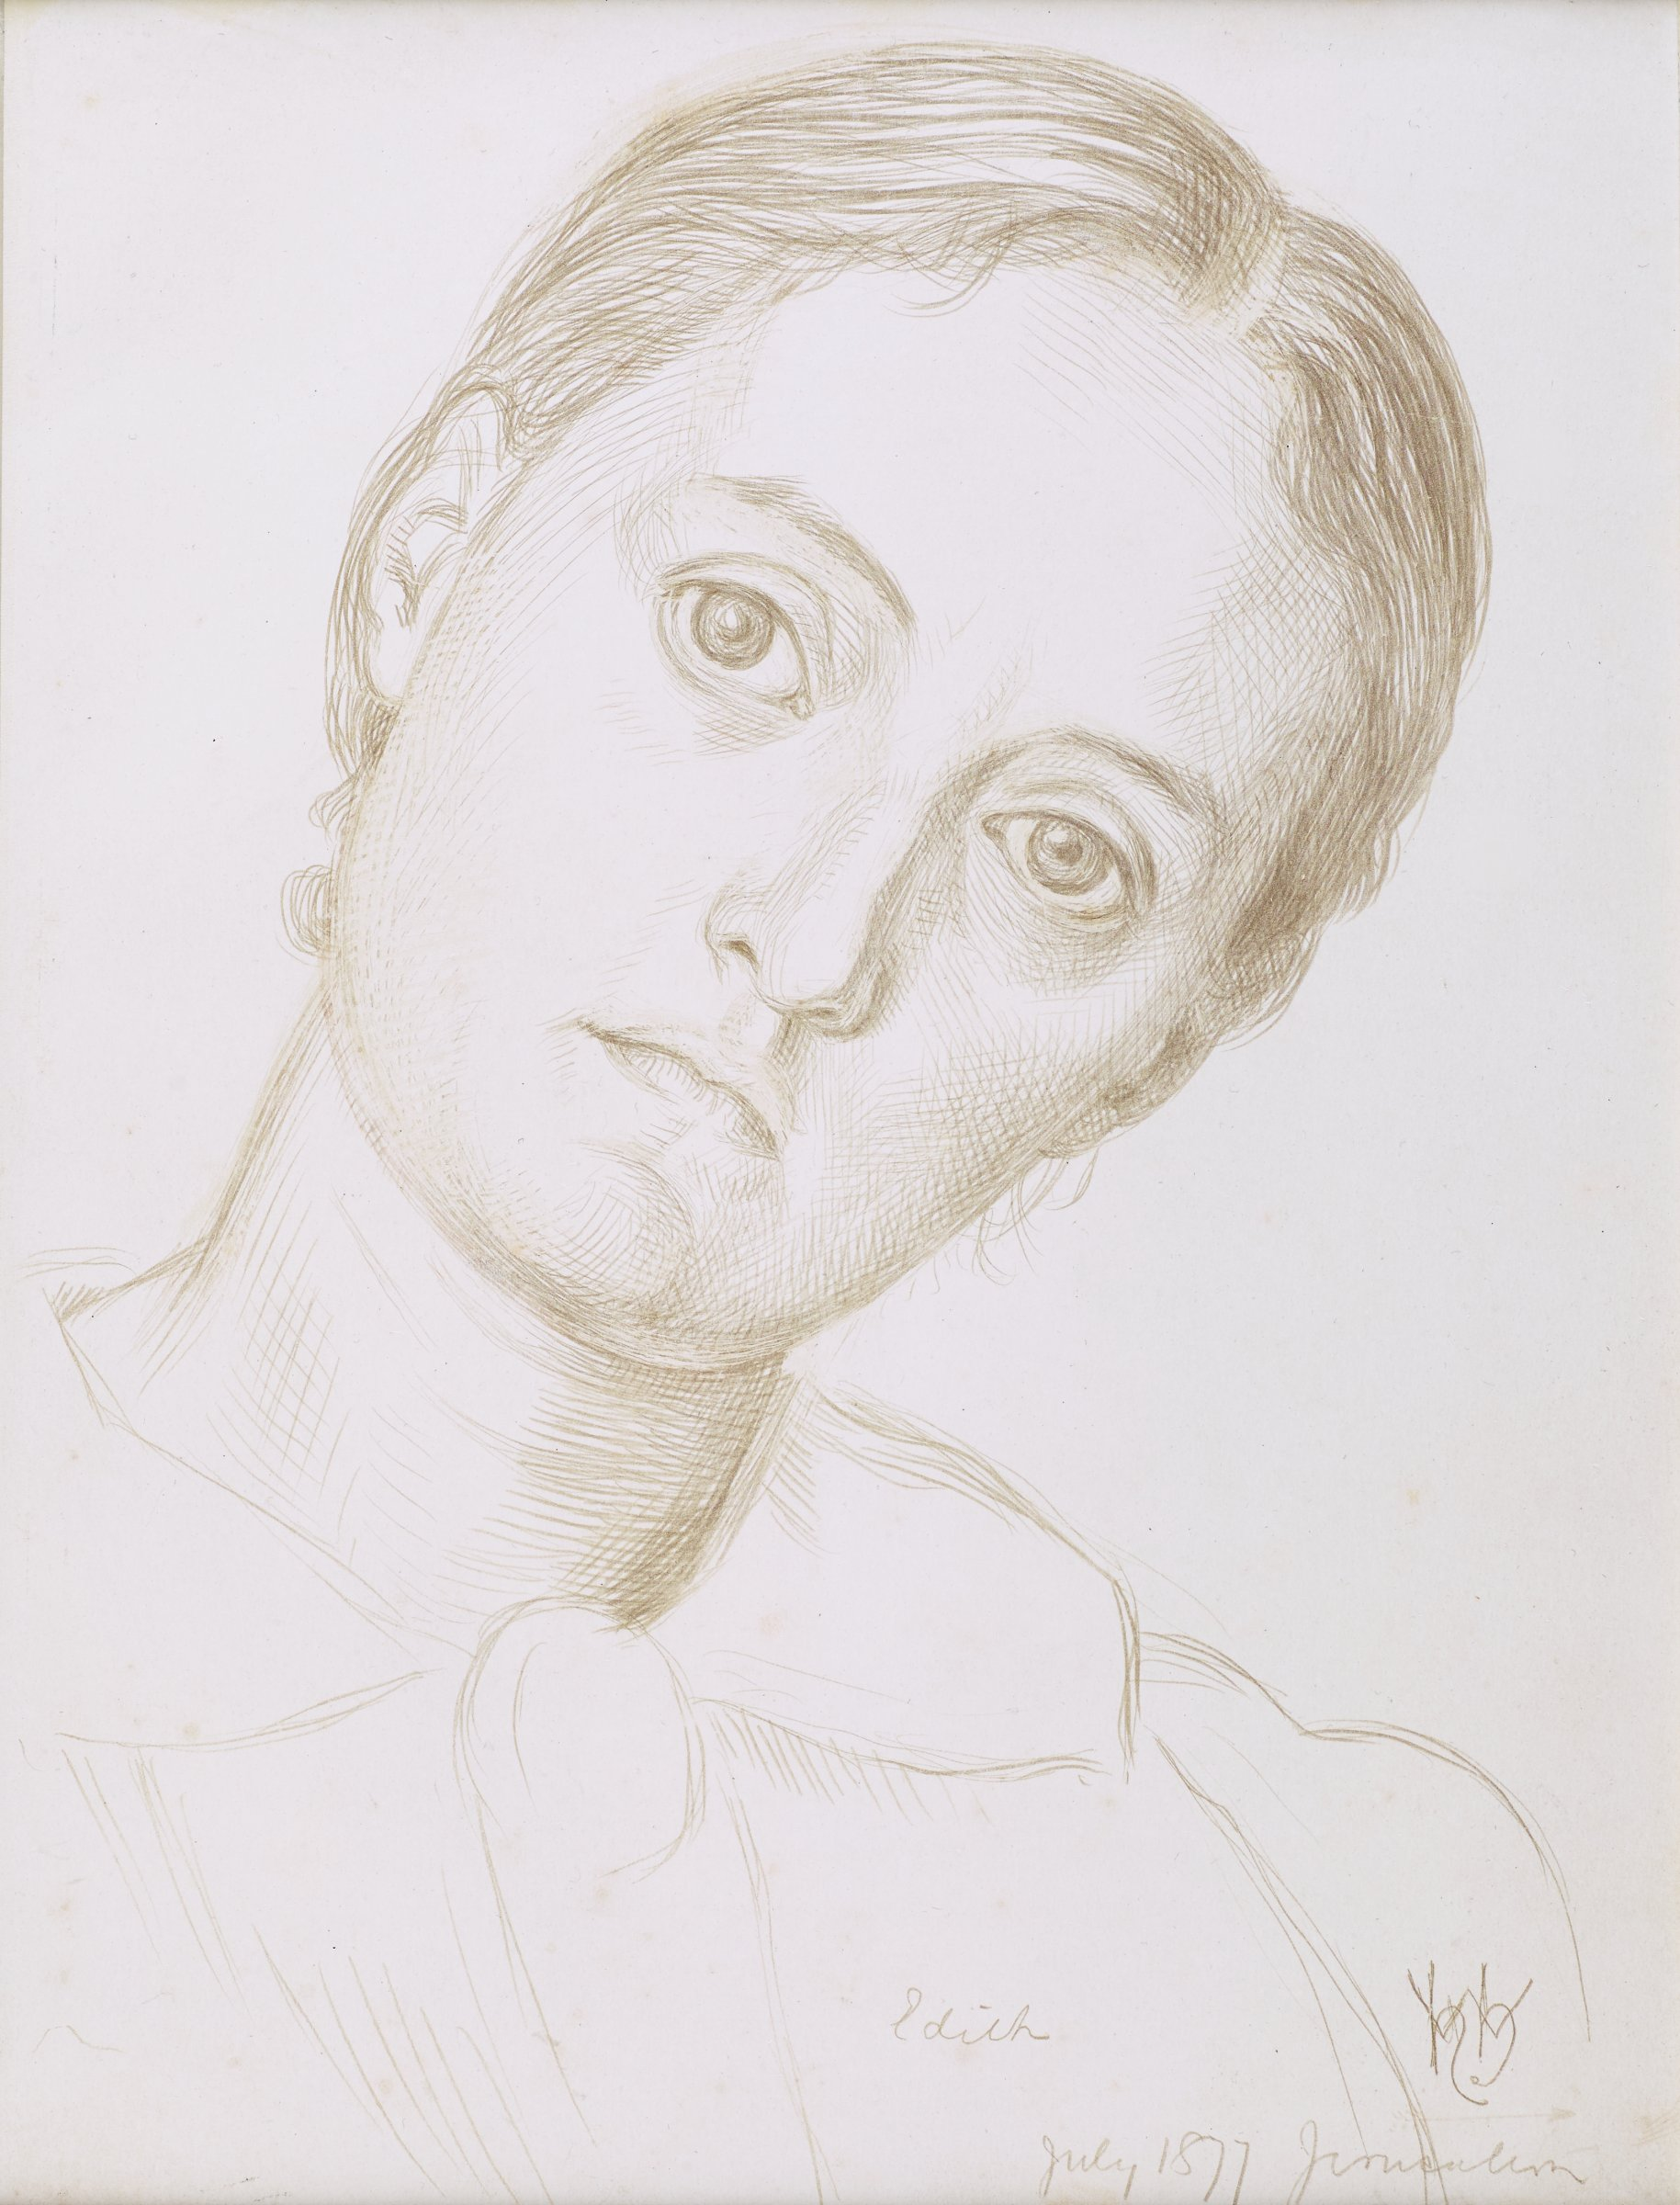 Bust-length view of sitter, at a slight angle to picture plane (left proper shoulder receding slightly). Head is tilted to proper left. Hair and features indicated in detail, while body remains summarily treated; brooch(?) at neckline.